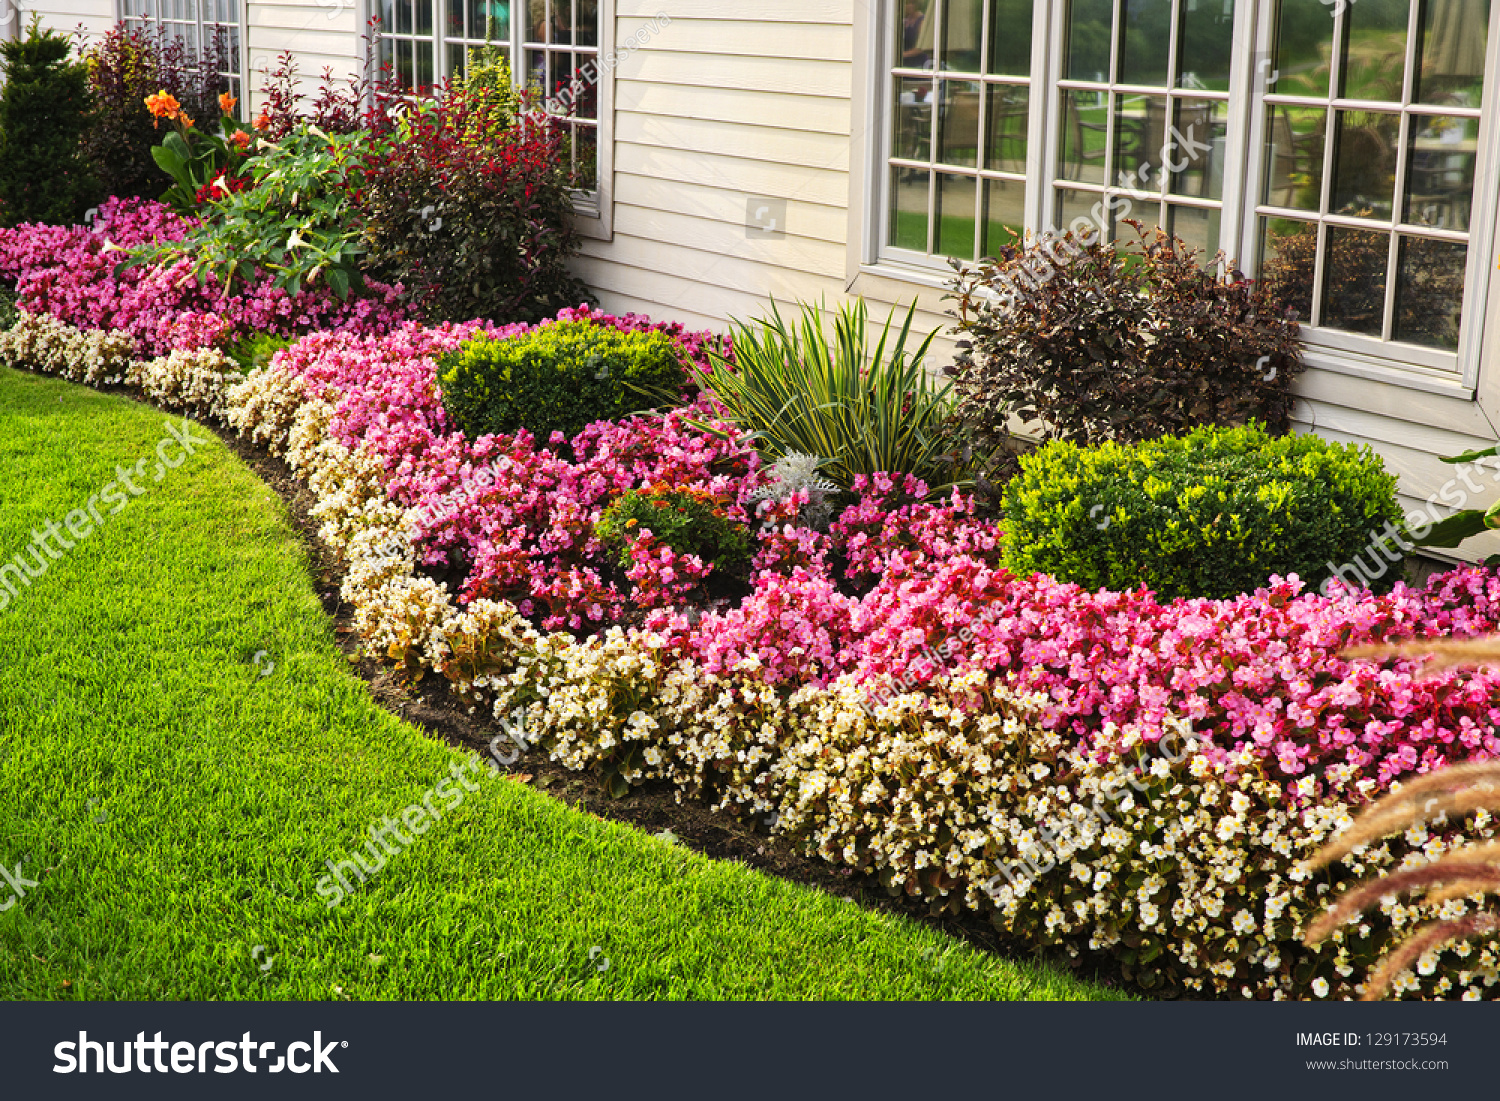 Flowerbed Of Colorful Flowers Against Wall With Windows Stock ...